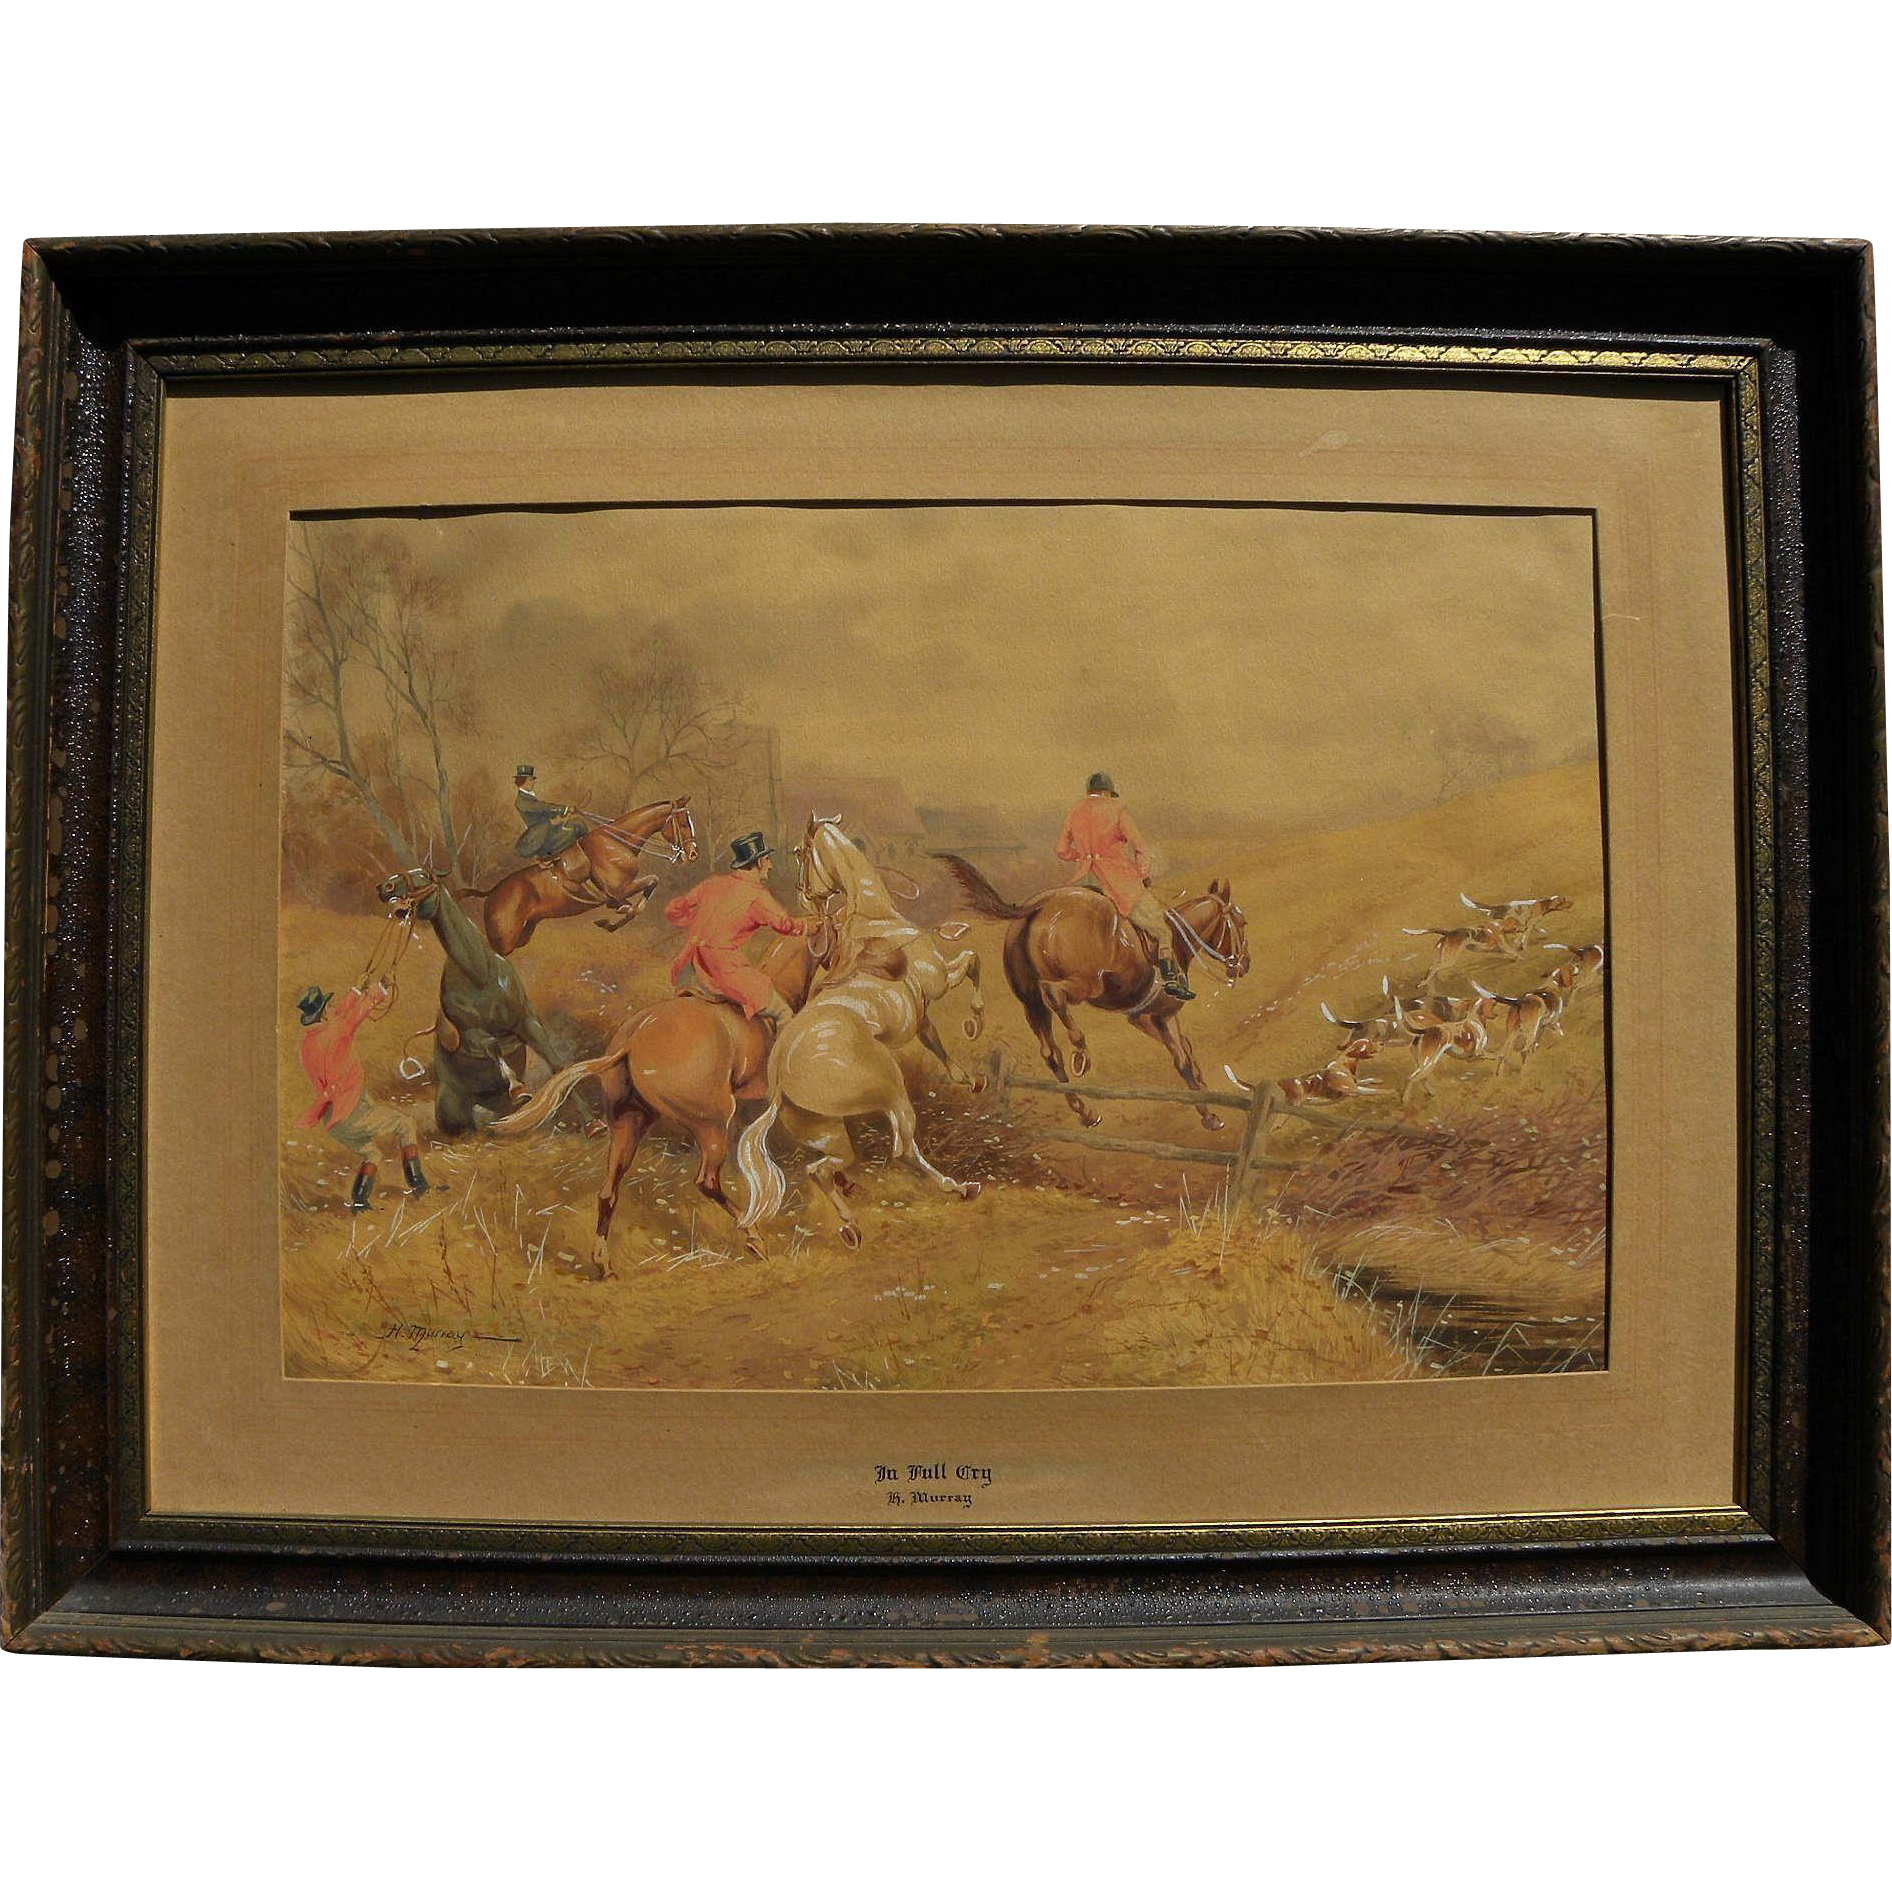 HENRY MURRAY (19th century English) detailed fine watercolor of equestrian hunt scene with dogs